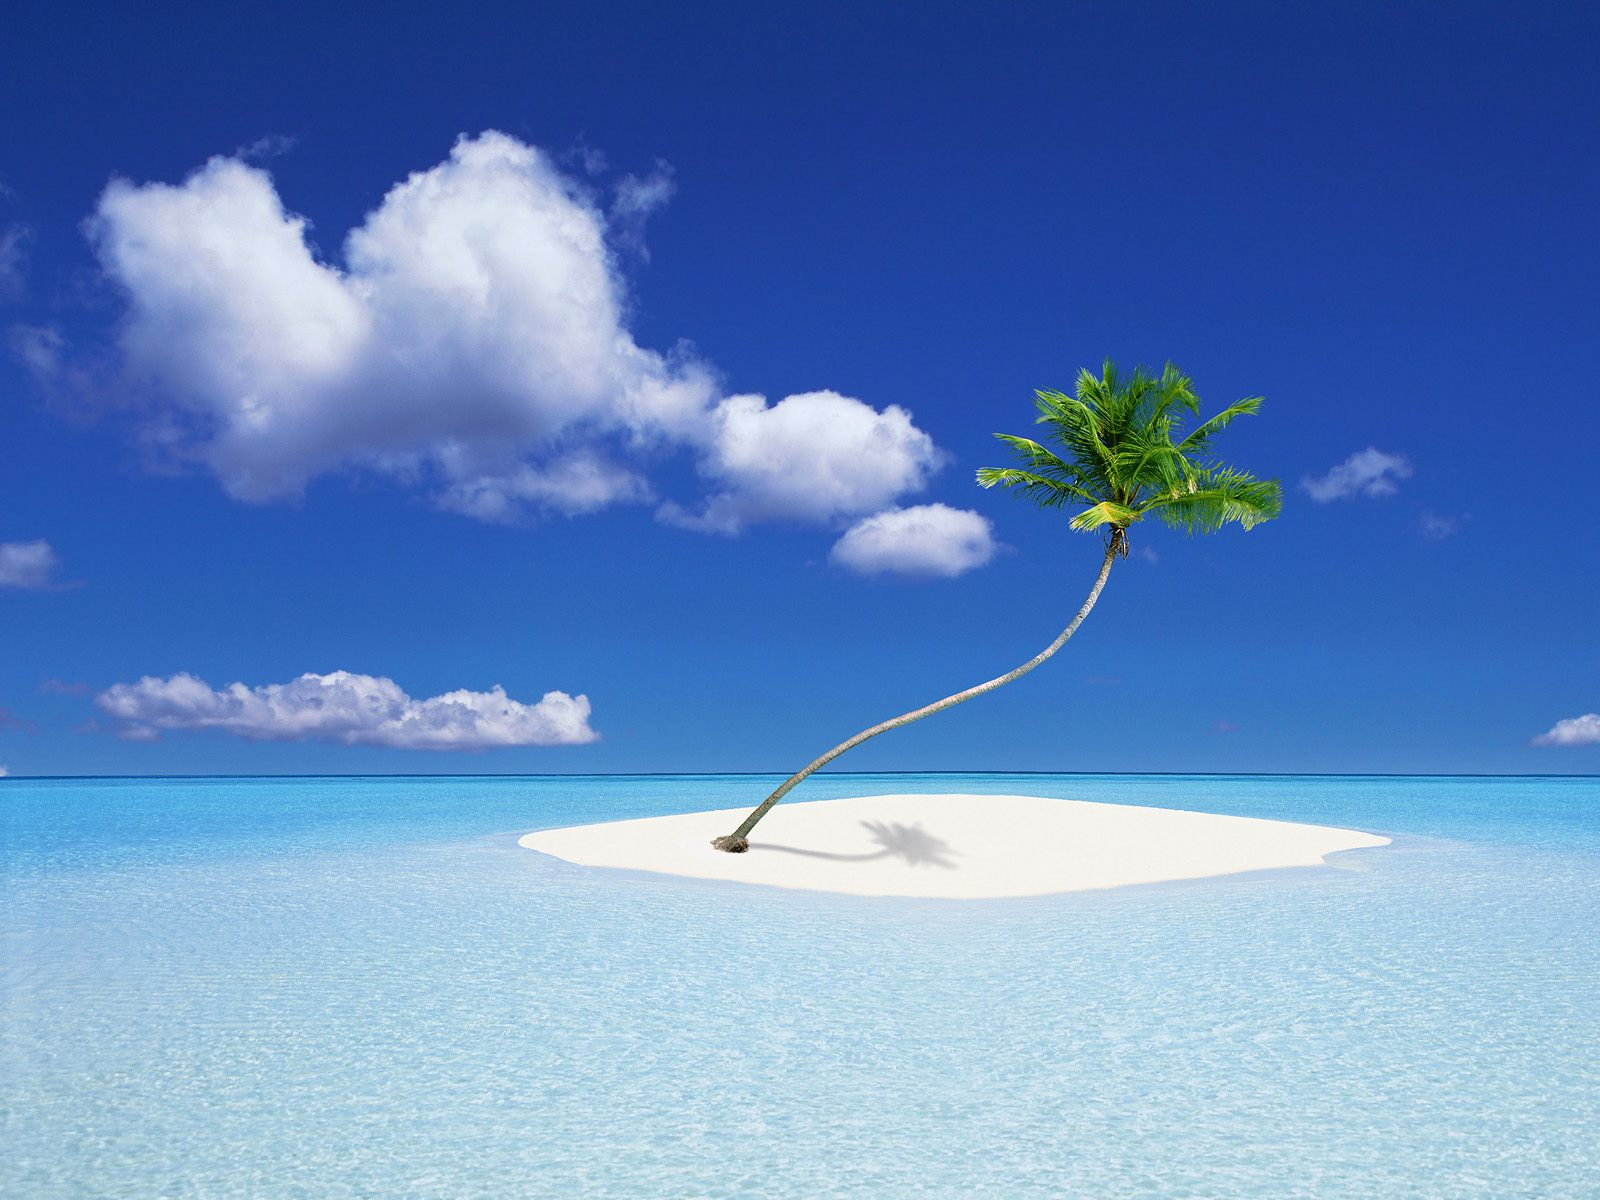 http://1.bp.blogspot.com/_RAlP3BmEW1Q/TQX3i2mbX_I/AAAAAAAACNQ/_q_gculV7Mw/s1600/The-best-top-summer-desktop-wallpapers-3.jpg